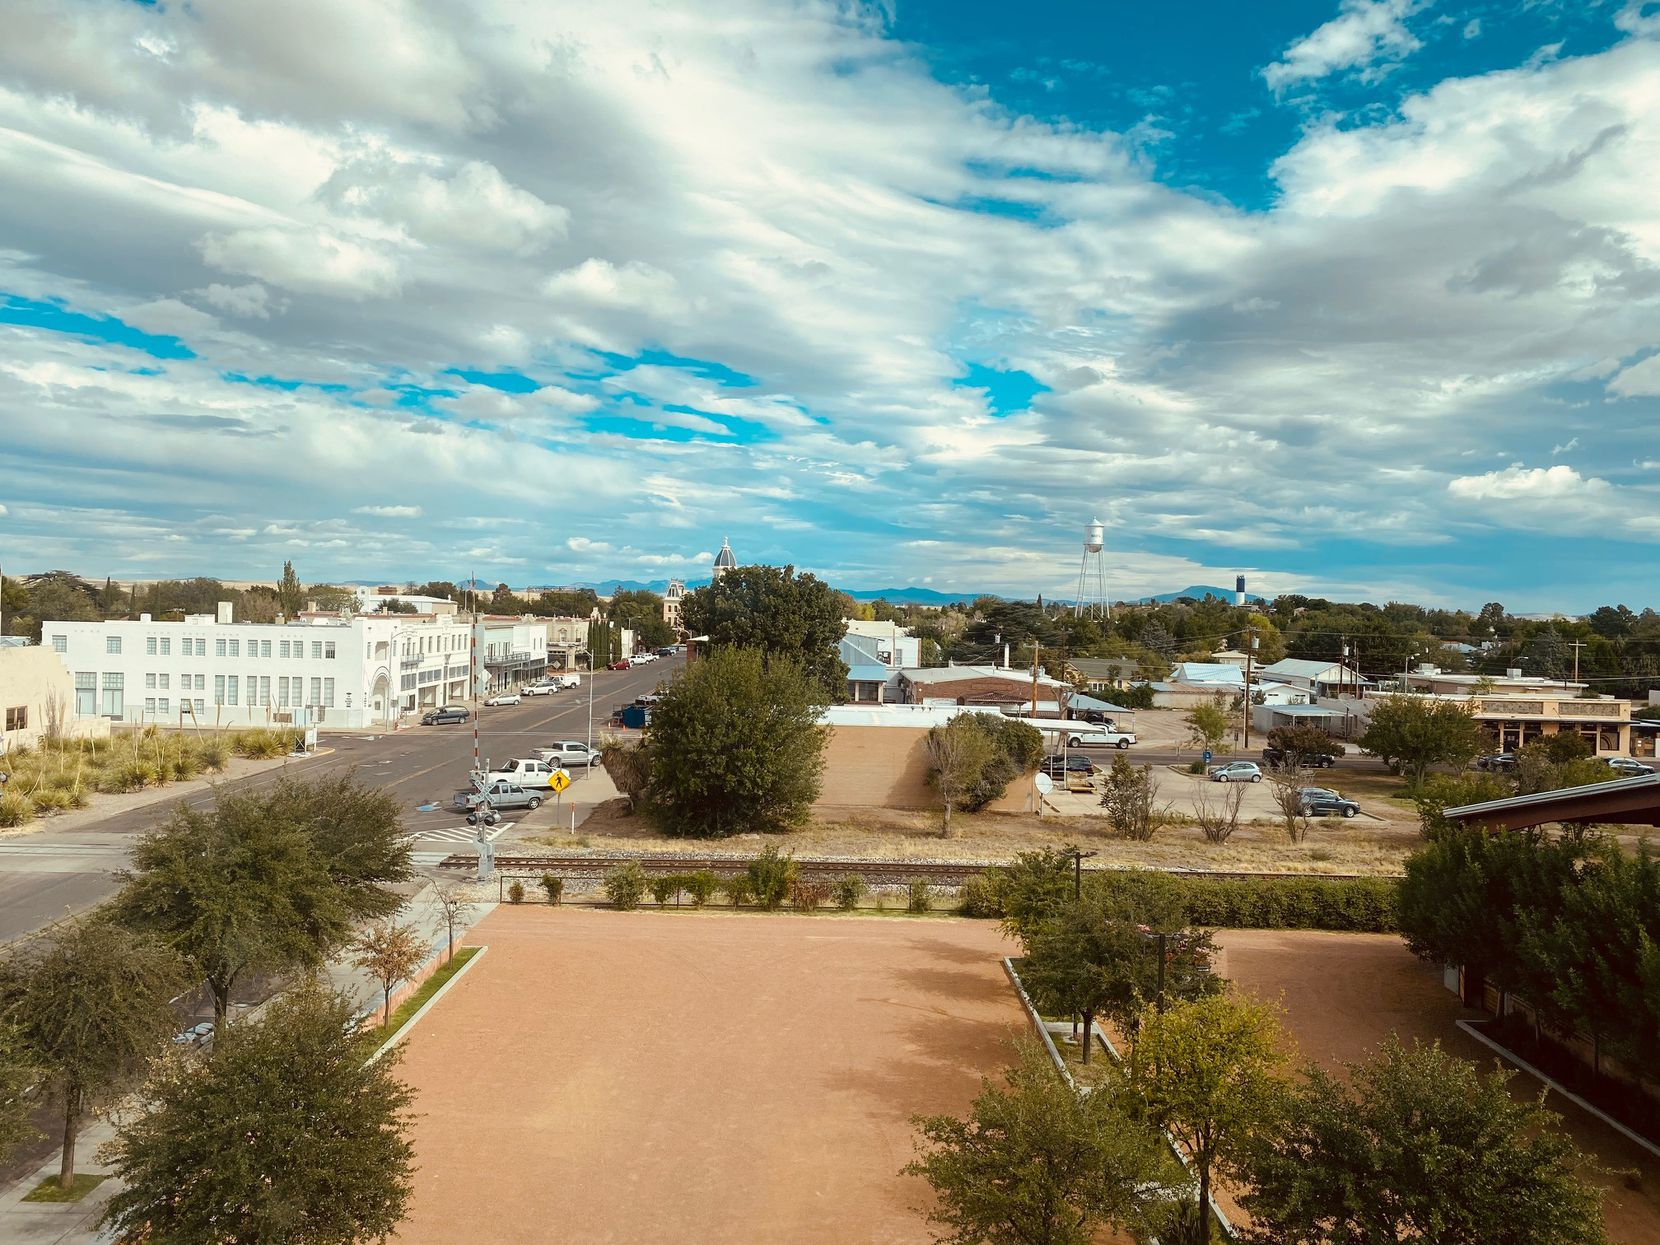 Marfa and its trademark wide open skies remain one of the region's top attractions.